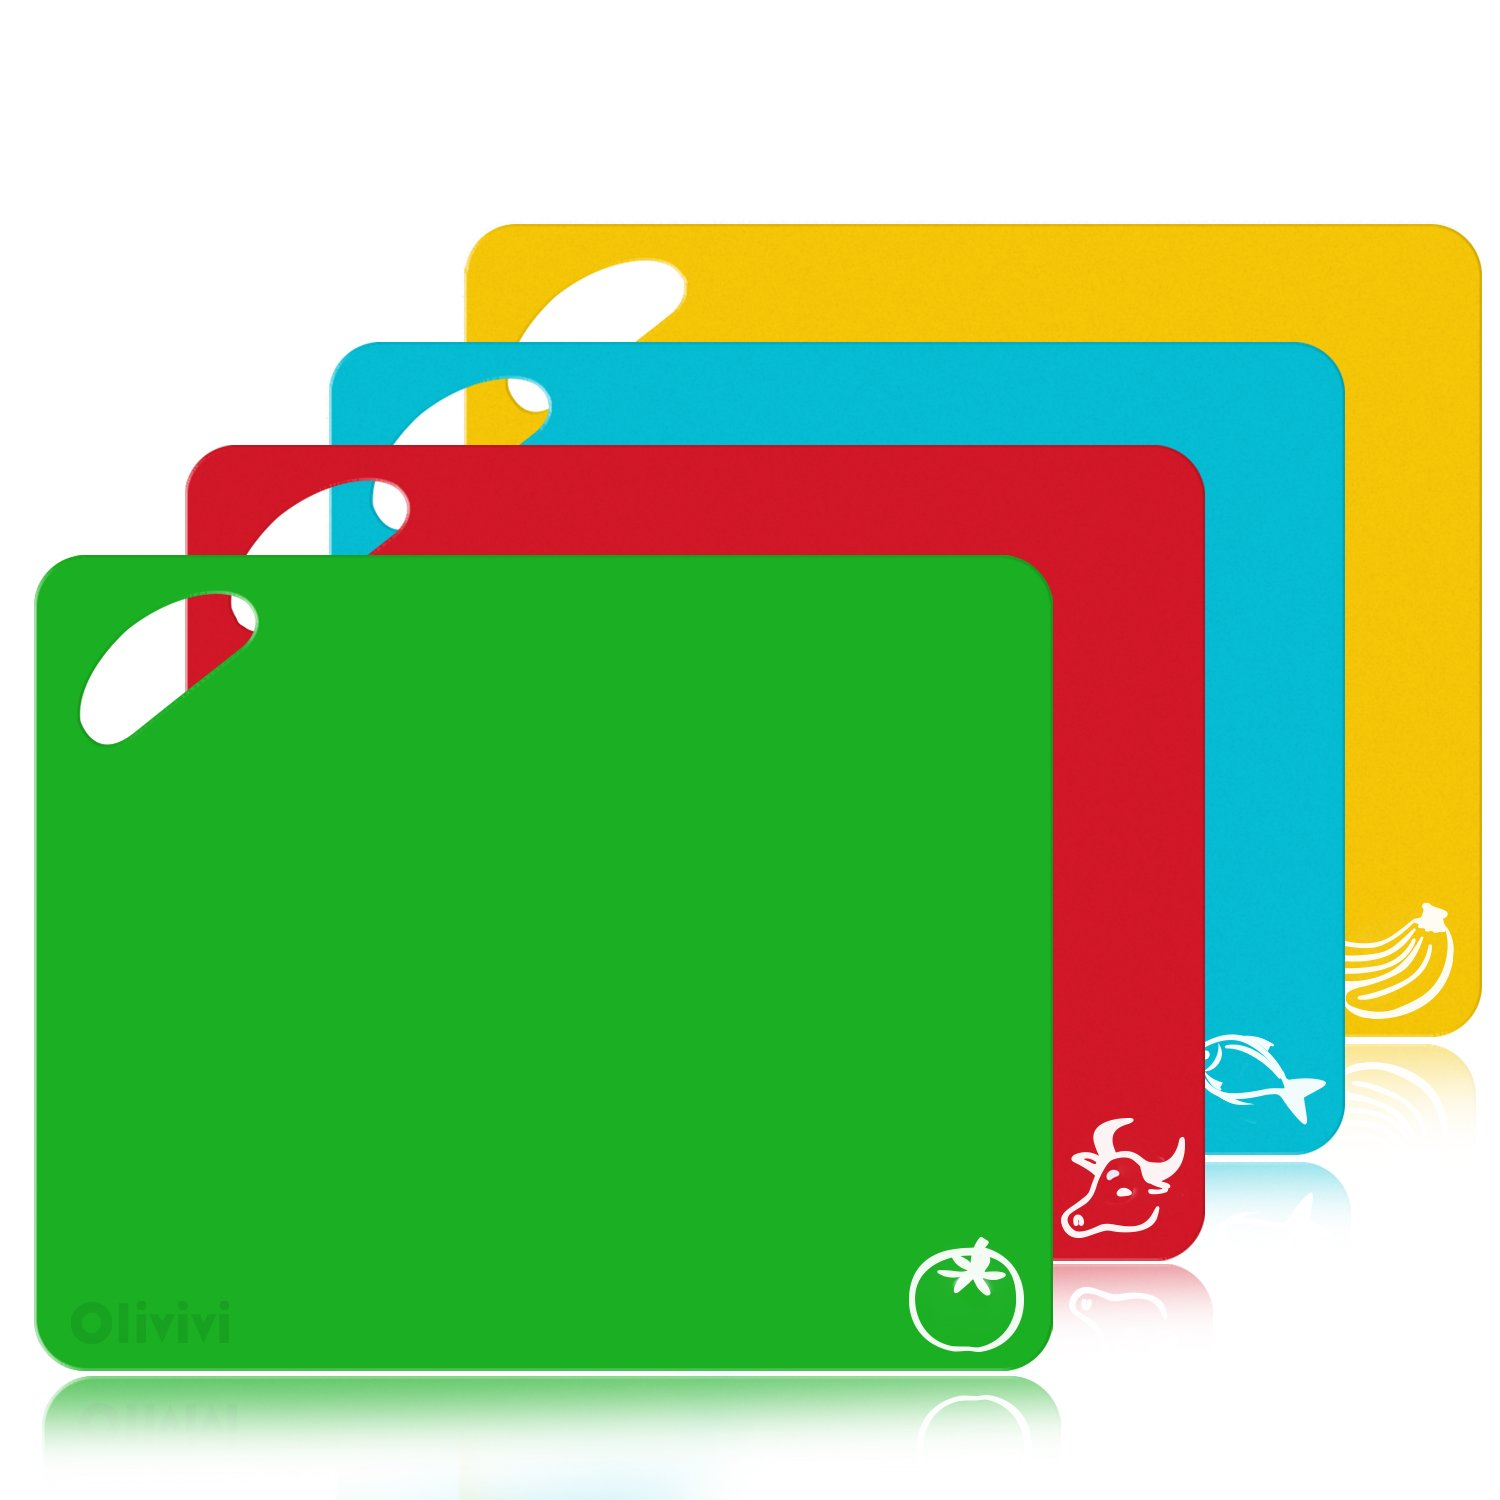 Extra Thick Flexible Plastic Kitchen Cutting Board Mats Set, Set of 4 Colored Mats With Food Icons & Easy-Grip Handles, BPA-Free, Non-Porous, Dishwasher Safe By Olivivi